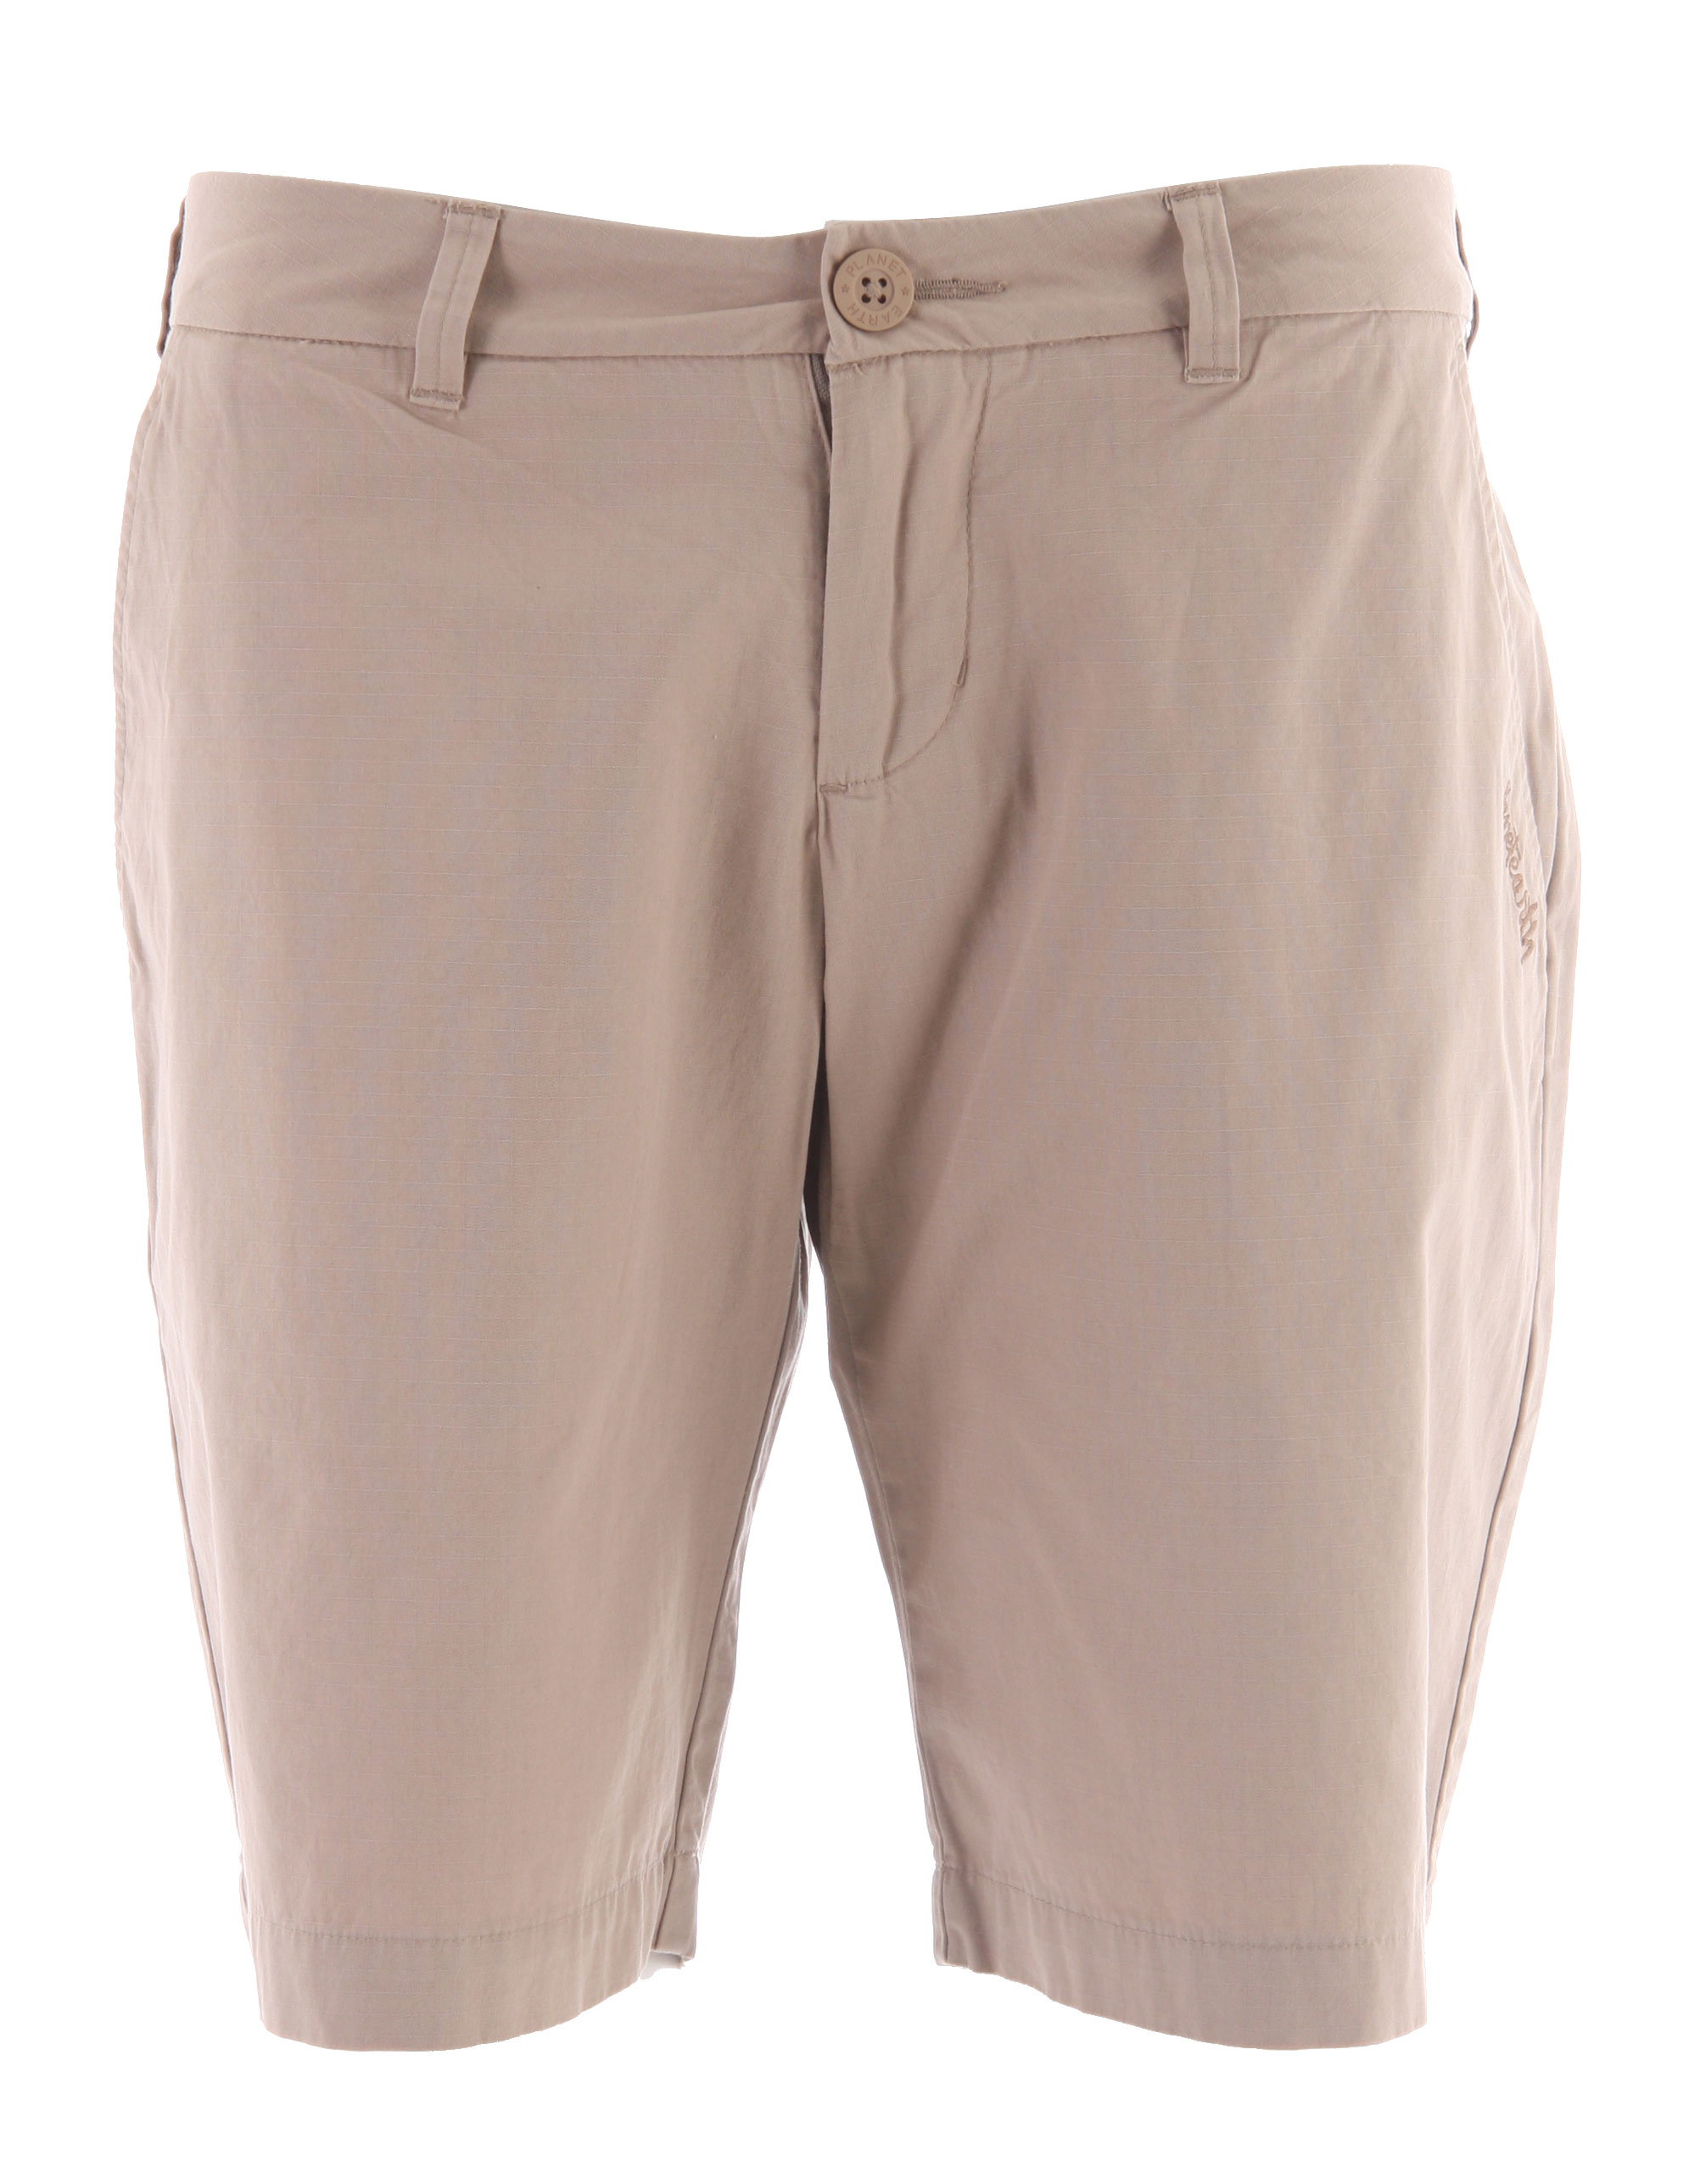 Planet Earth Preston Shorts Khaki - $21.25